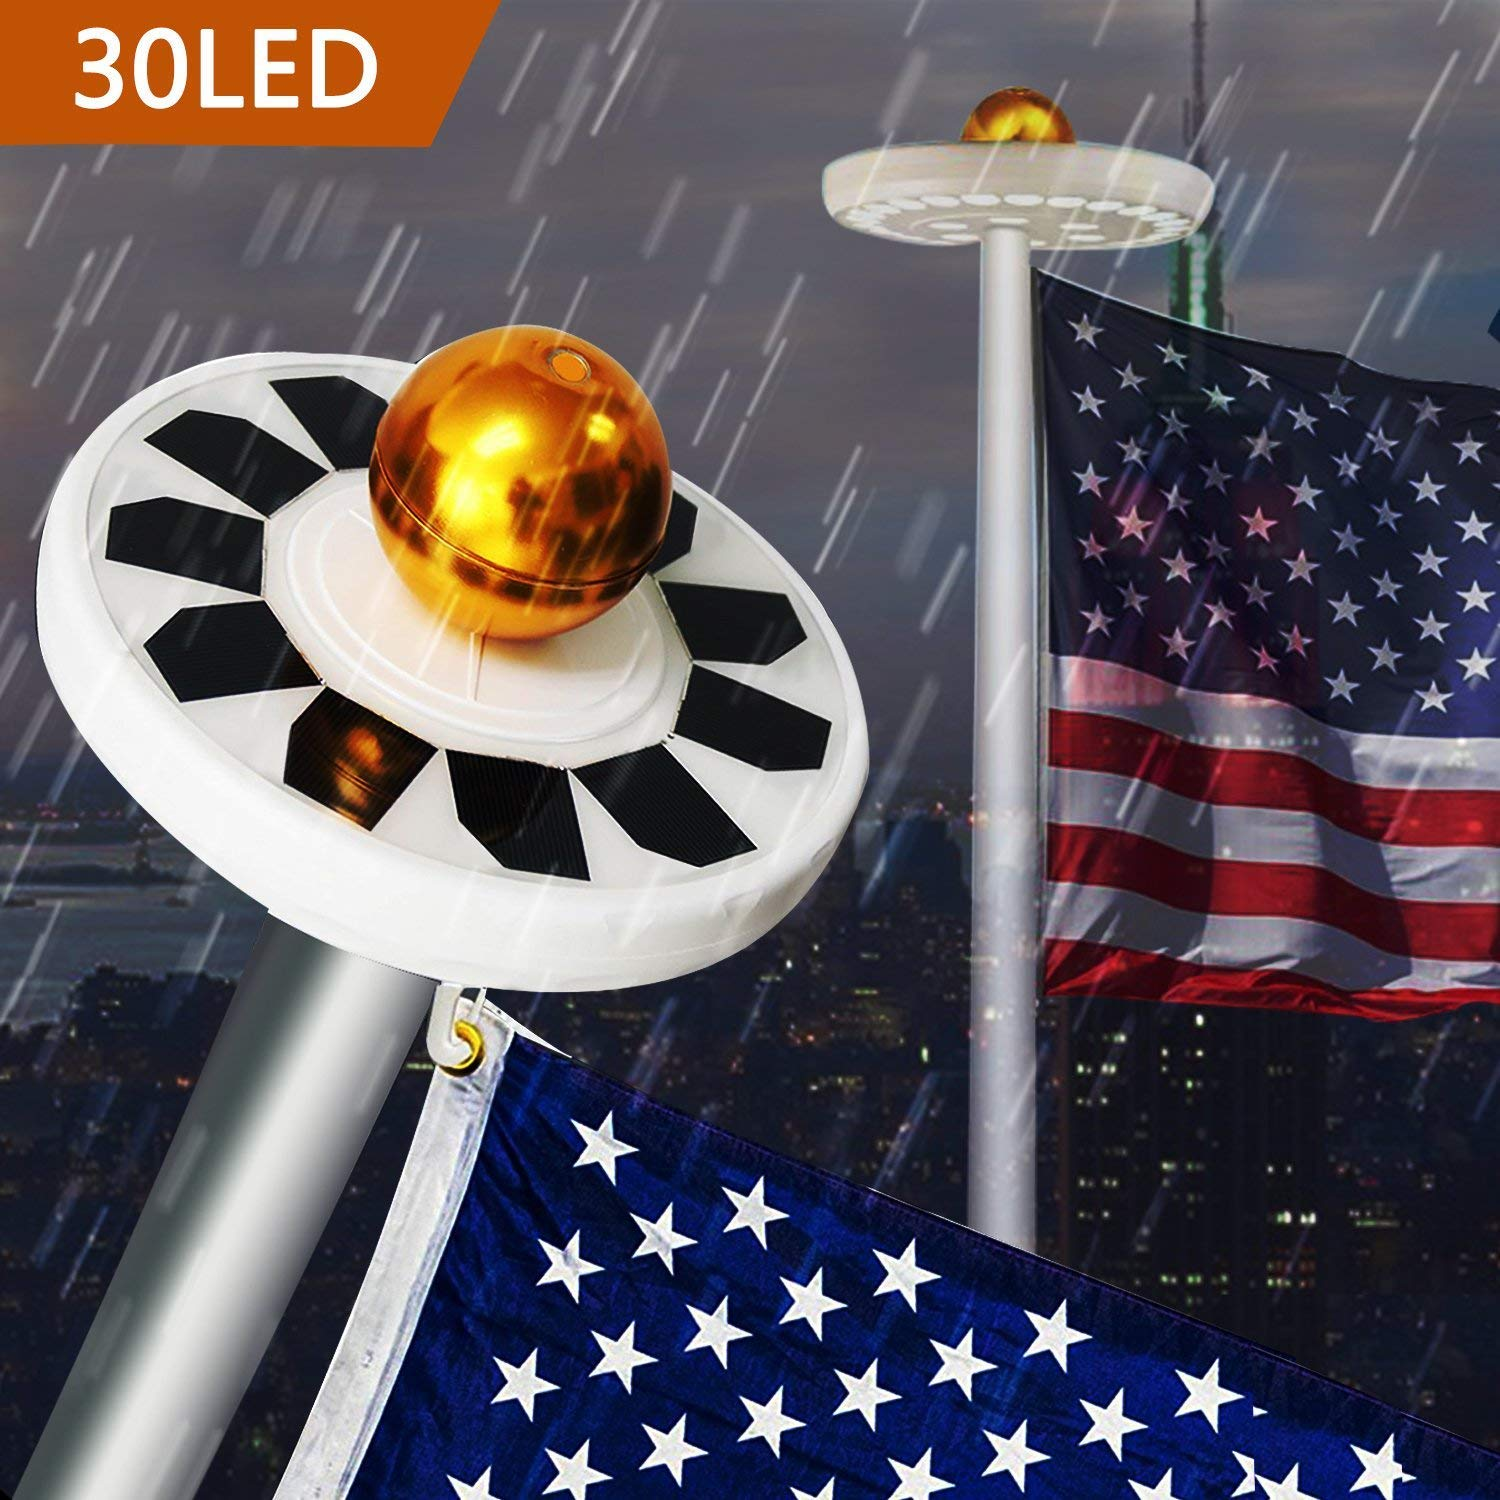 30LEDs Solar Powered Flagpole Flag Pole Light Water-Resistant Downlight for Most 15-25ft Flag Pole Outdoor Light IP65 Solar lamp by TPLINC